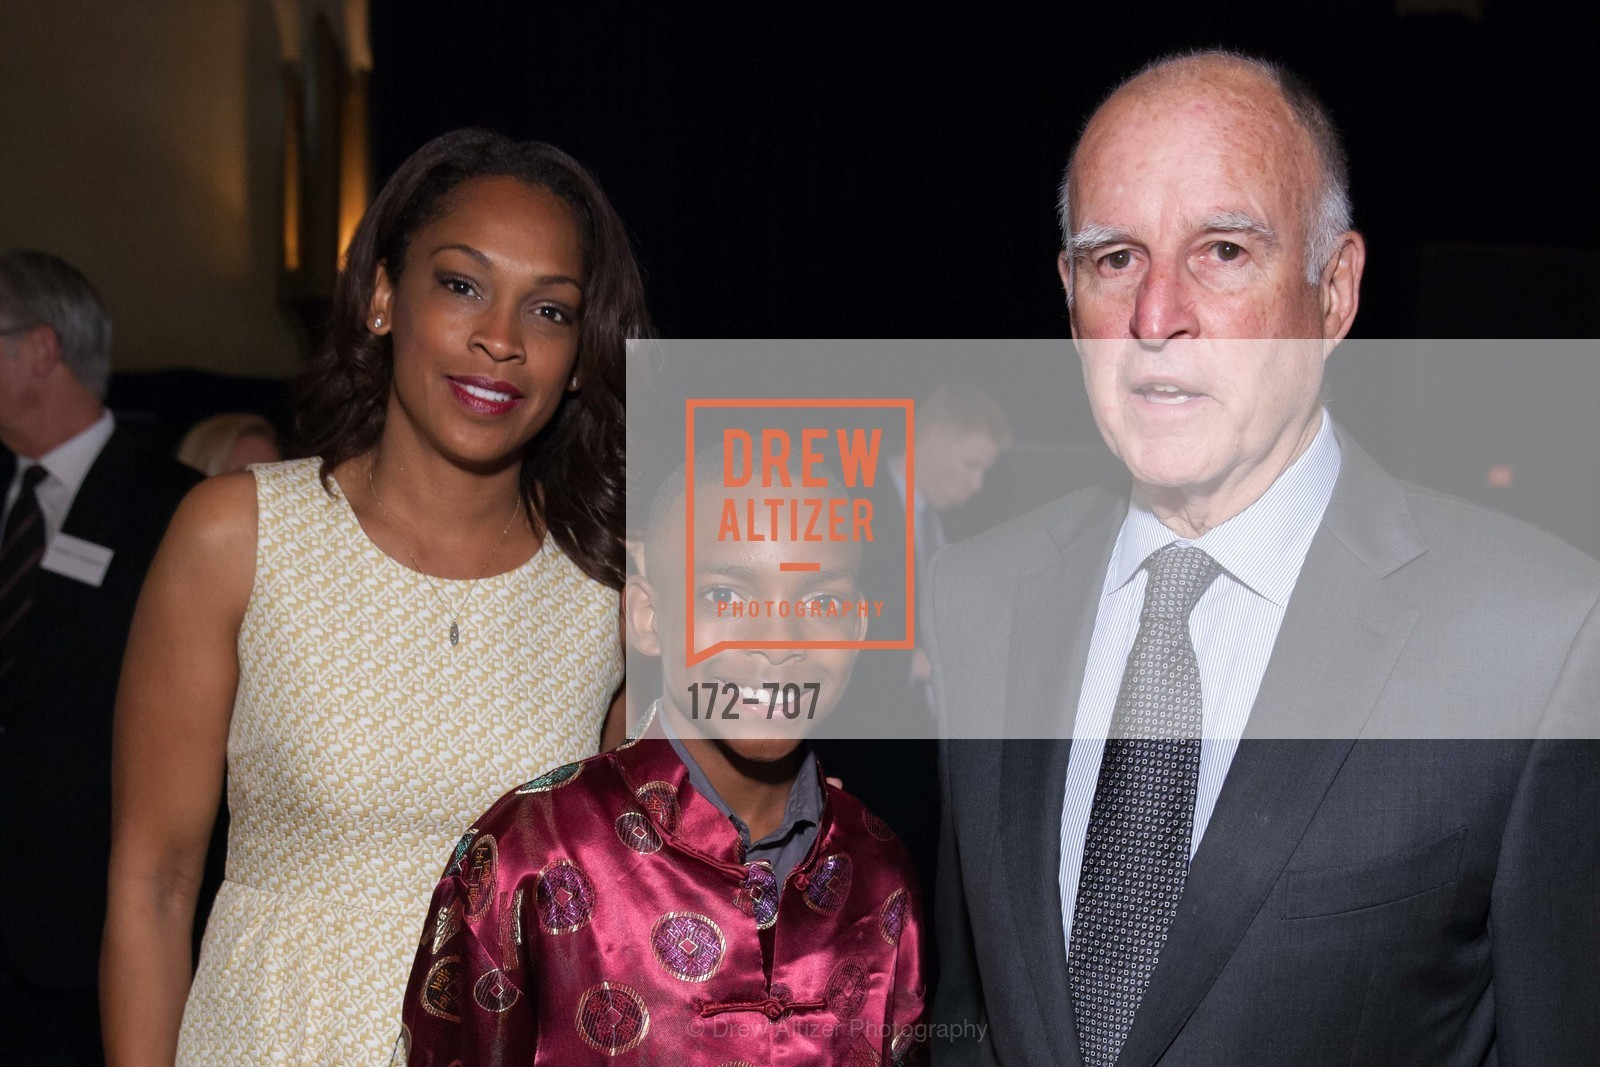 Jena Domingue, Justin Walker, Gov. Jerry Brown, OAKLAND SCHOOL FOR THE ARTS Gala 2015 with Governor Jerry Brown, US, May 8th, 2015,Drew Altizer, Drew Altizer Photography, full-service agency, private events, San Francisco photographer, photographer california